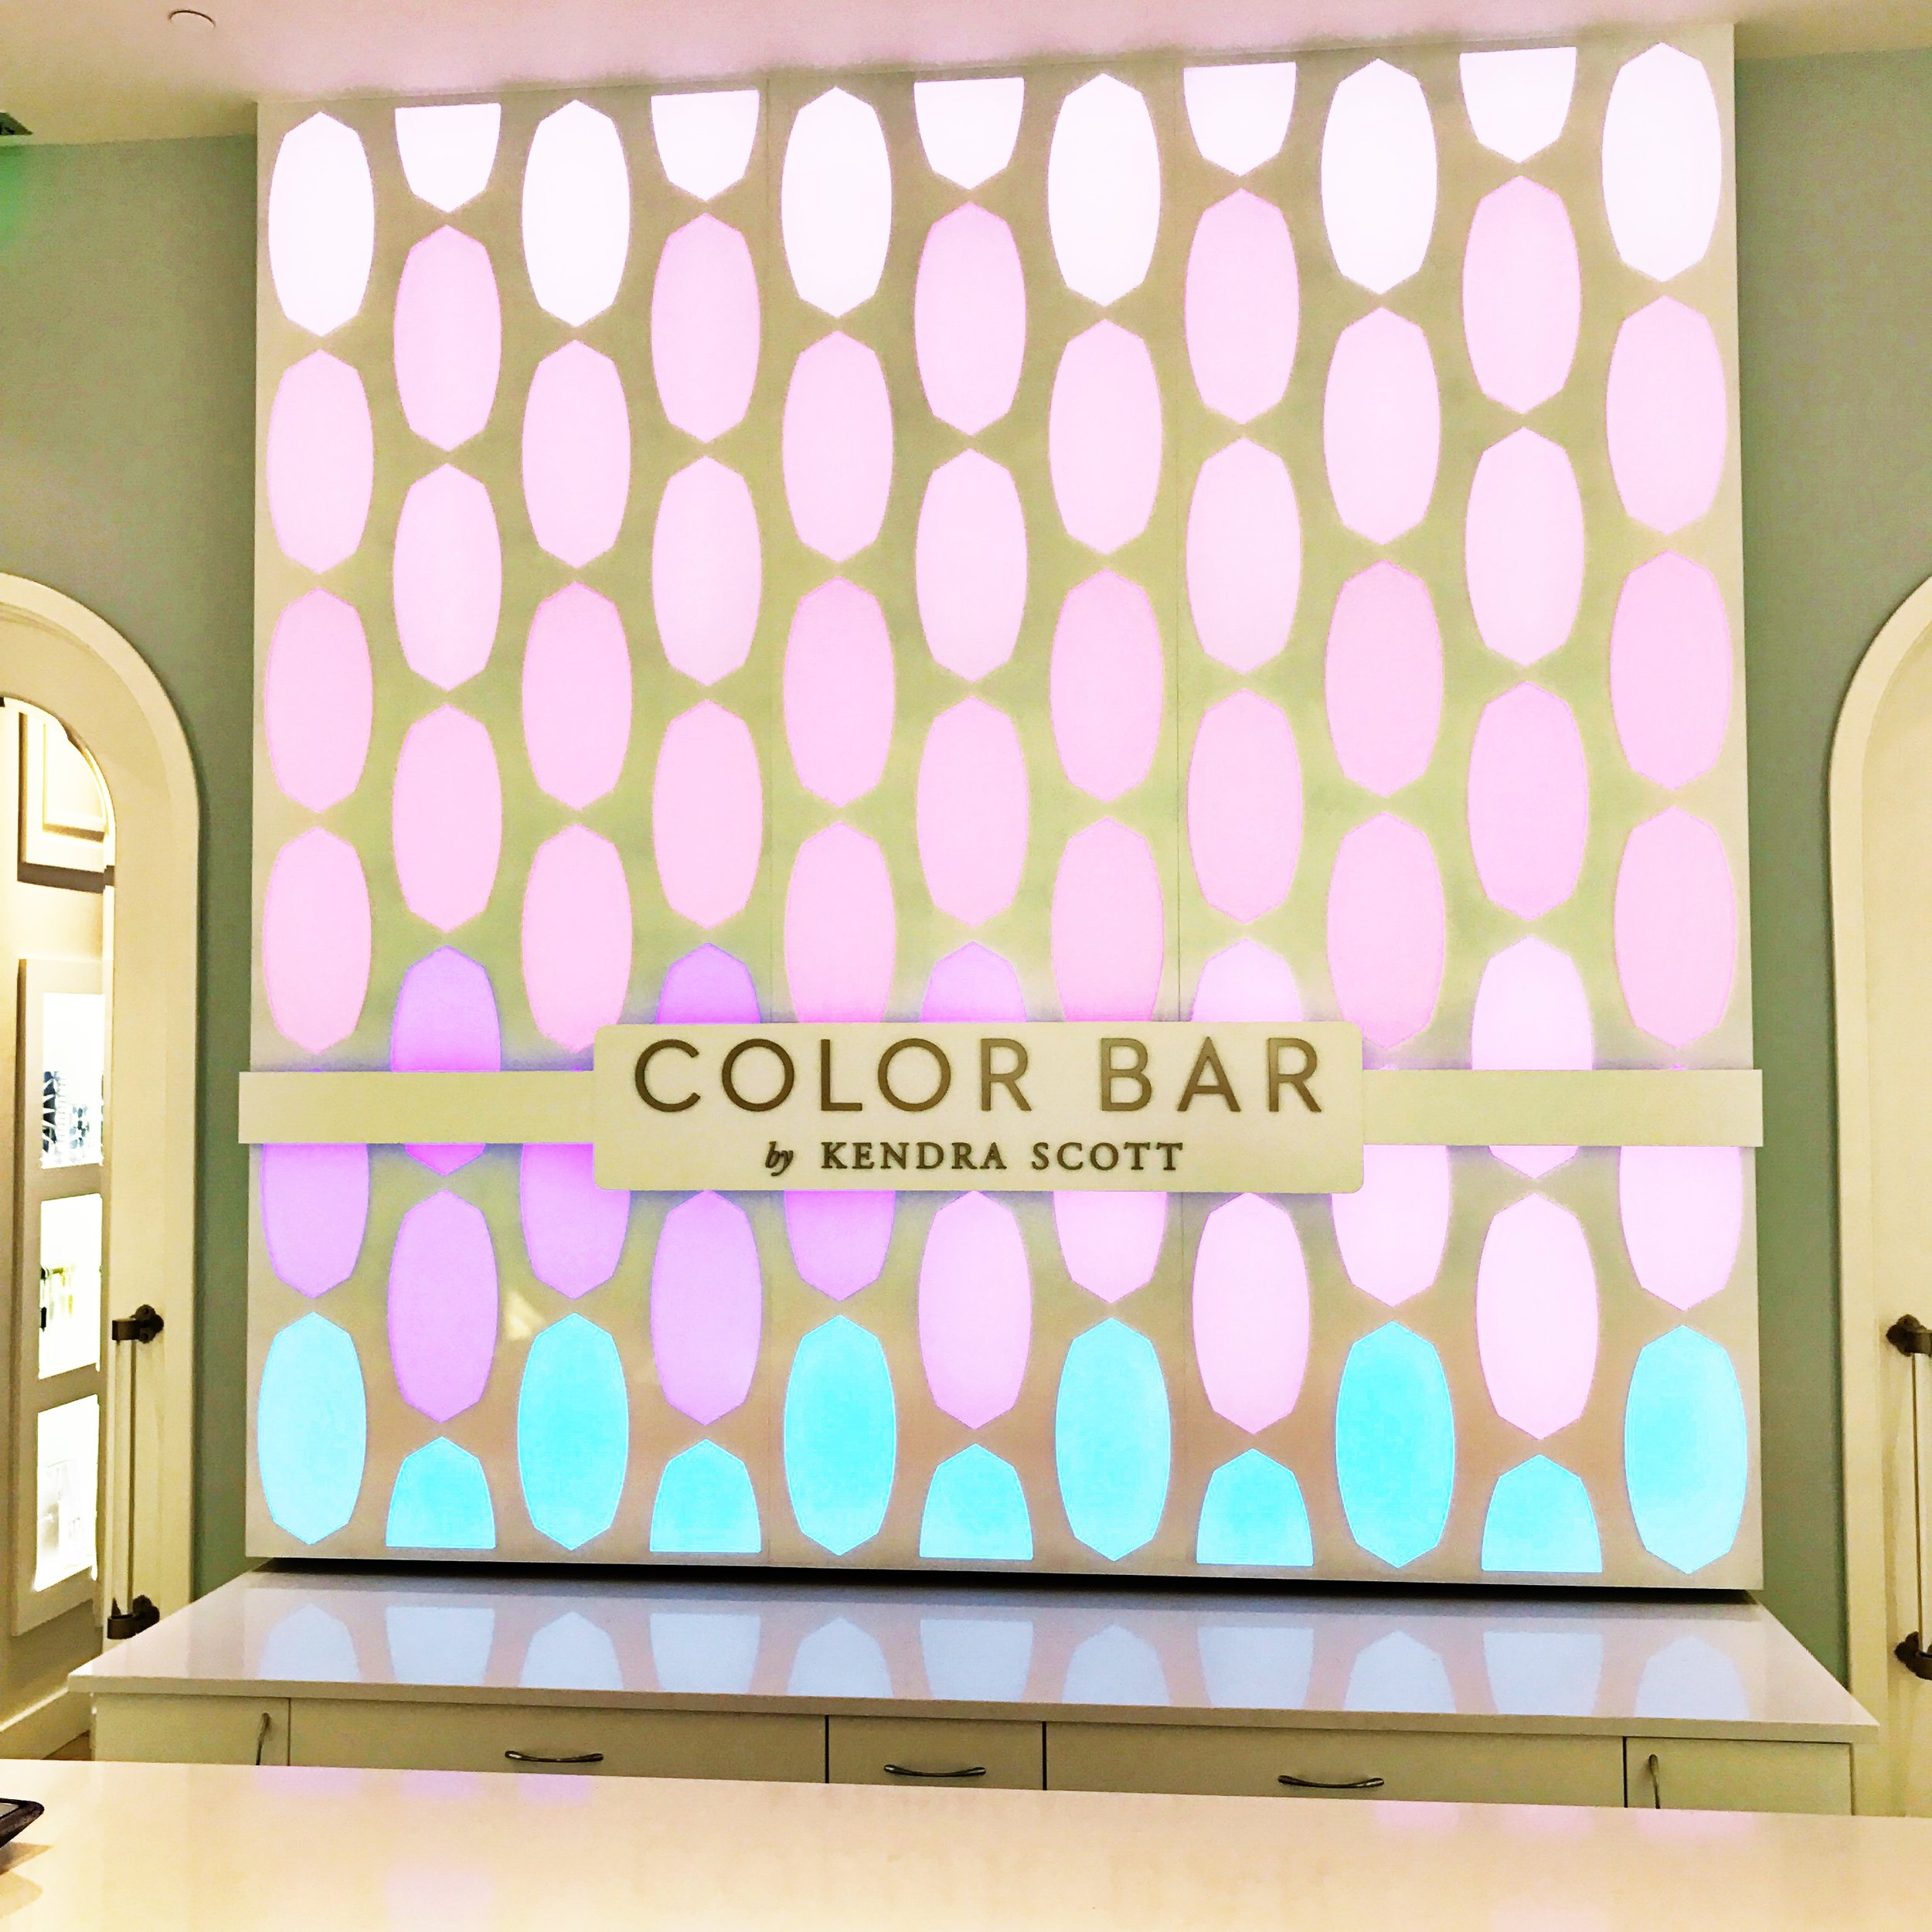 If you haven't been into a Kendra Scott store before, you not only can shop from some amazing pieces but you can actually create your OWN if you can't find something that you love!Kendra Scott's color bar is so incredible. They have a super sized tablet where you can select the style, metal, and stone choice of your custom jewelry.